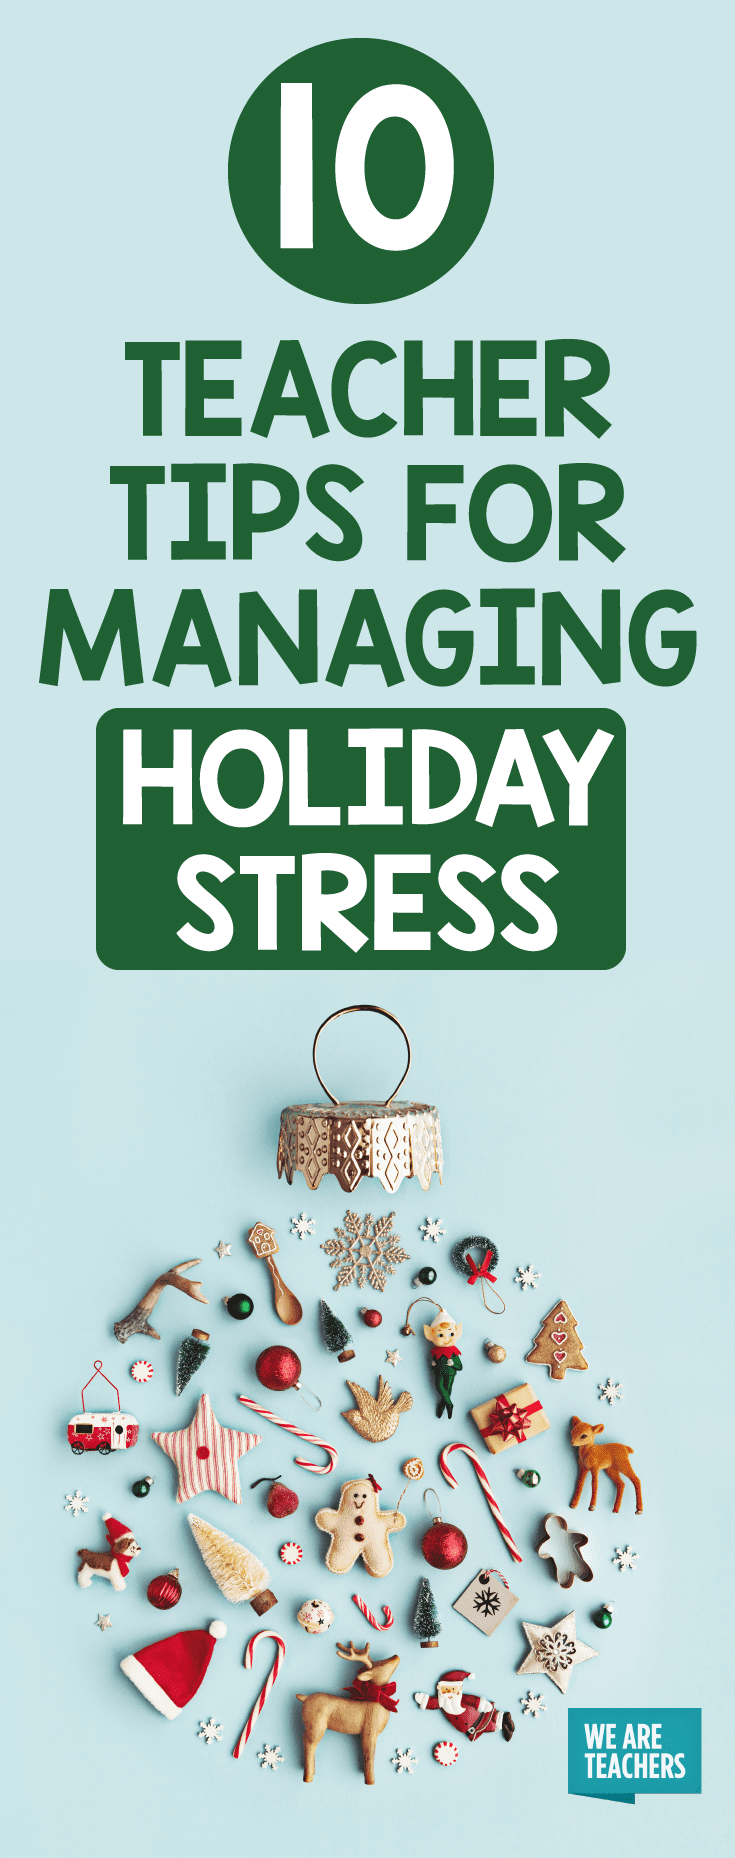 Holiday Stress Management - Tips for Teachers - WeAreTeachers